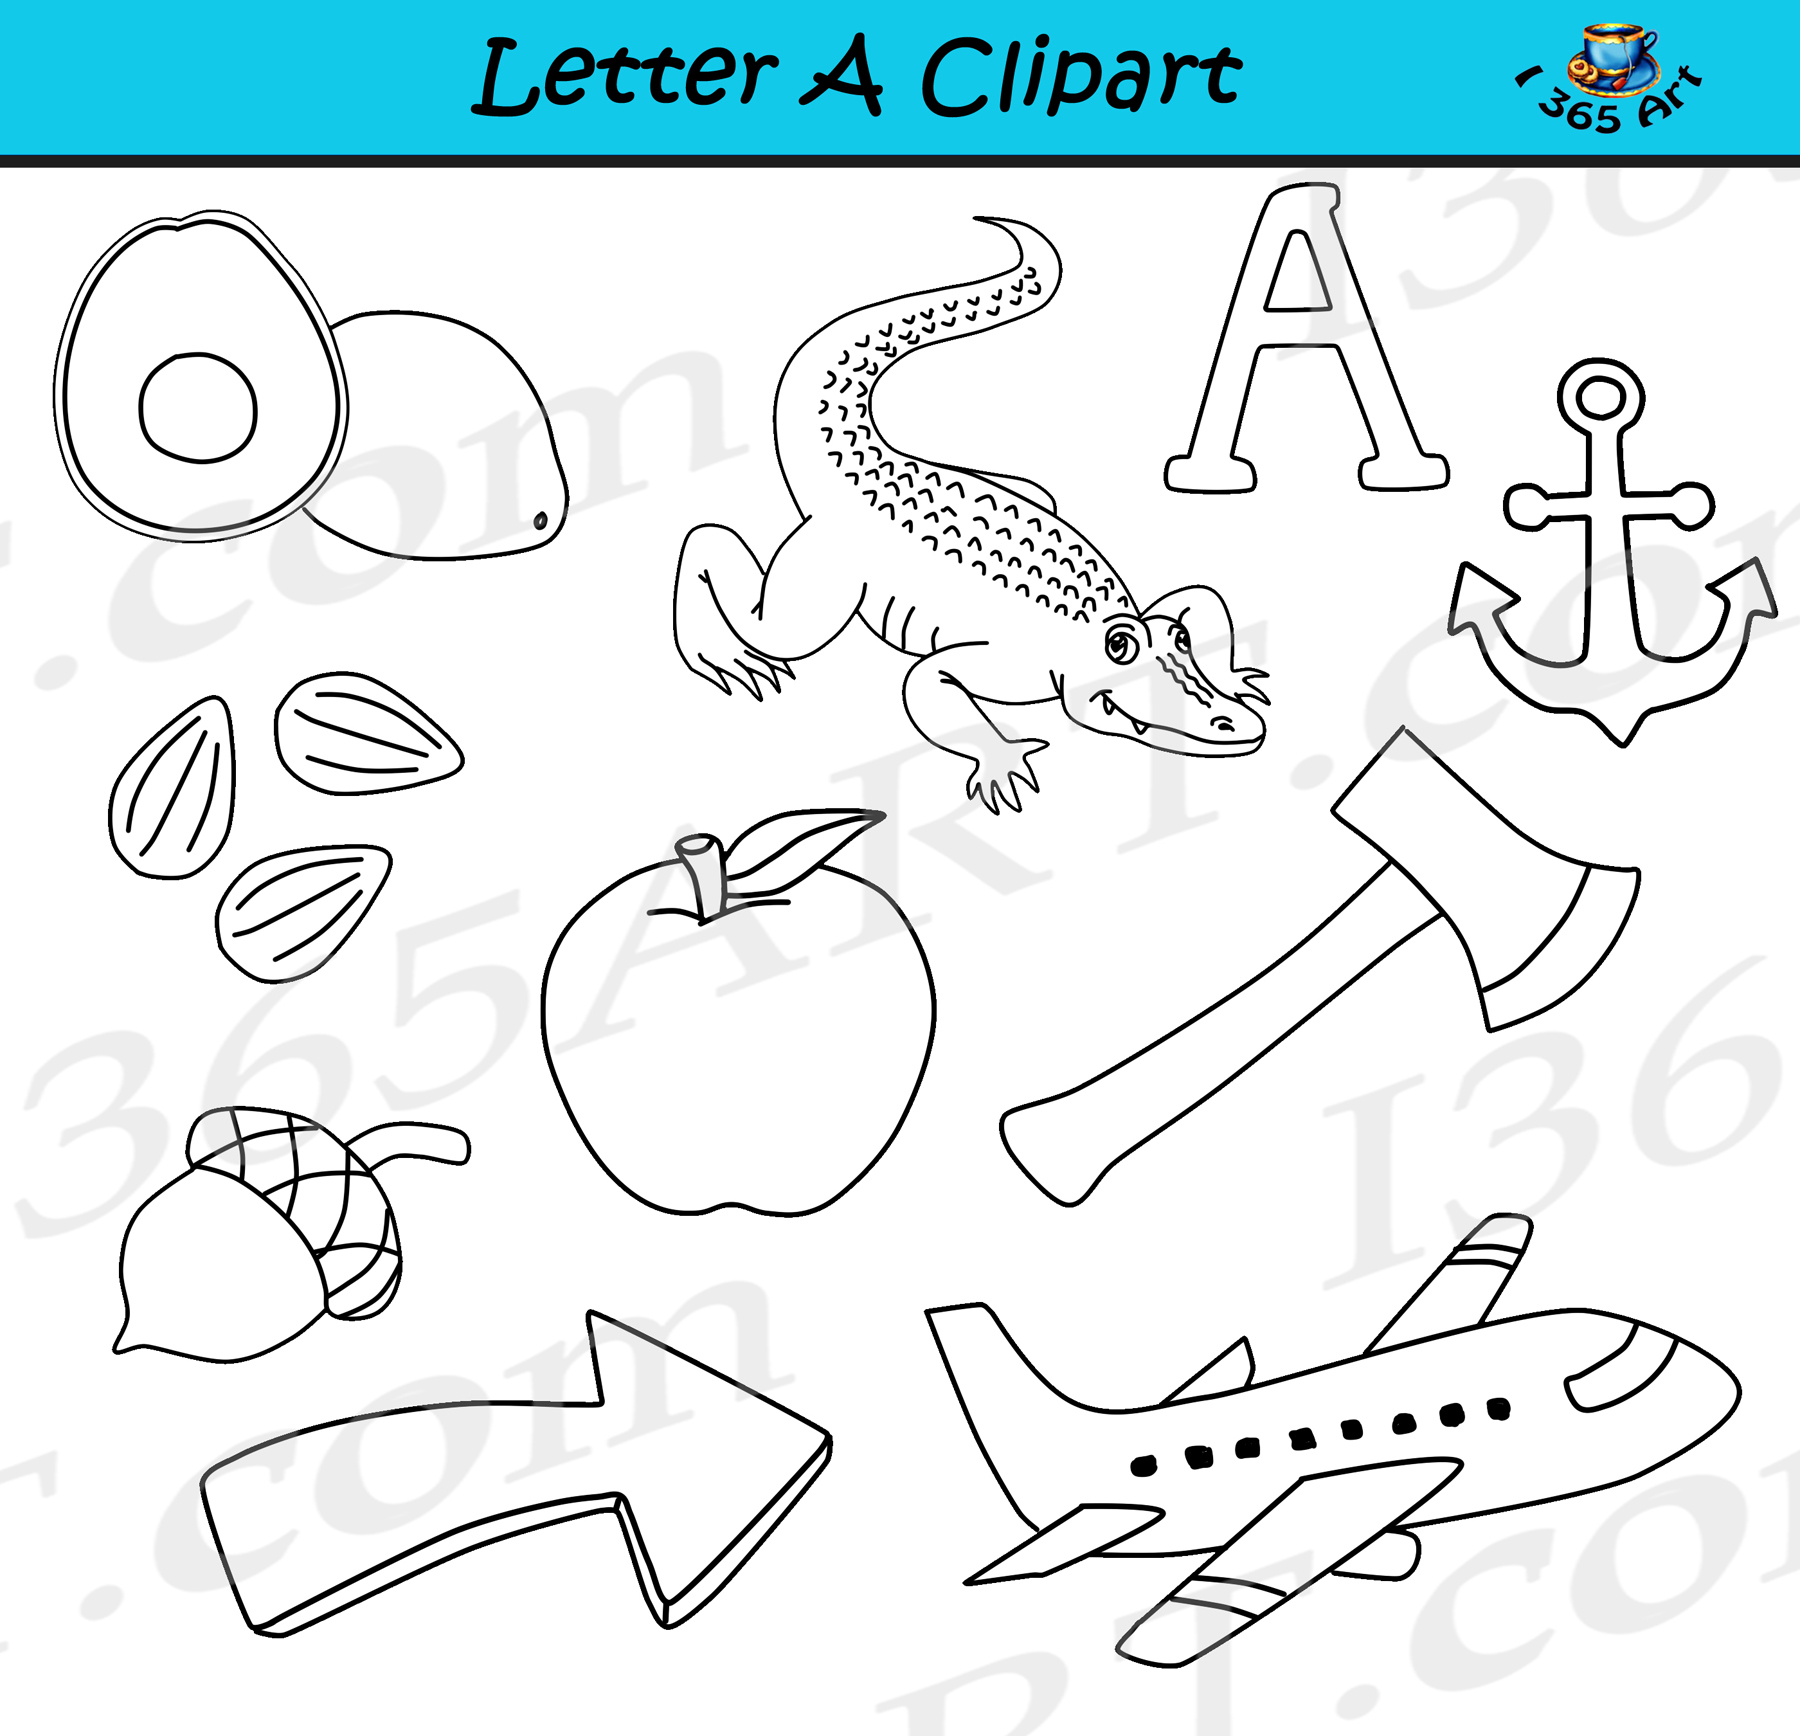 Objects that starts with letter a clipart jpg royalty free library Letter A Objects Clipart - Learning The Alphabets - Commercial Clipart for  School jpg royalty free library